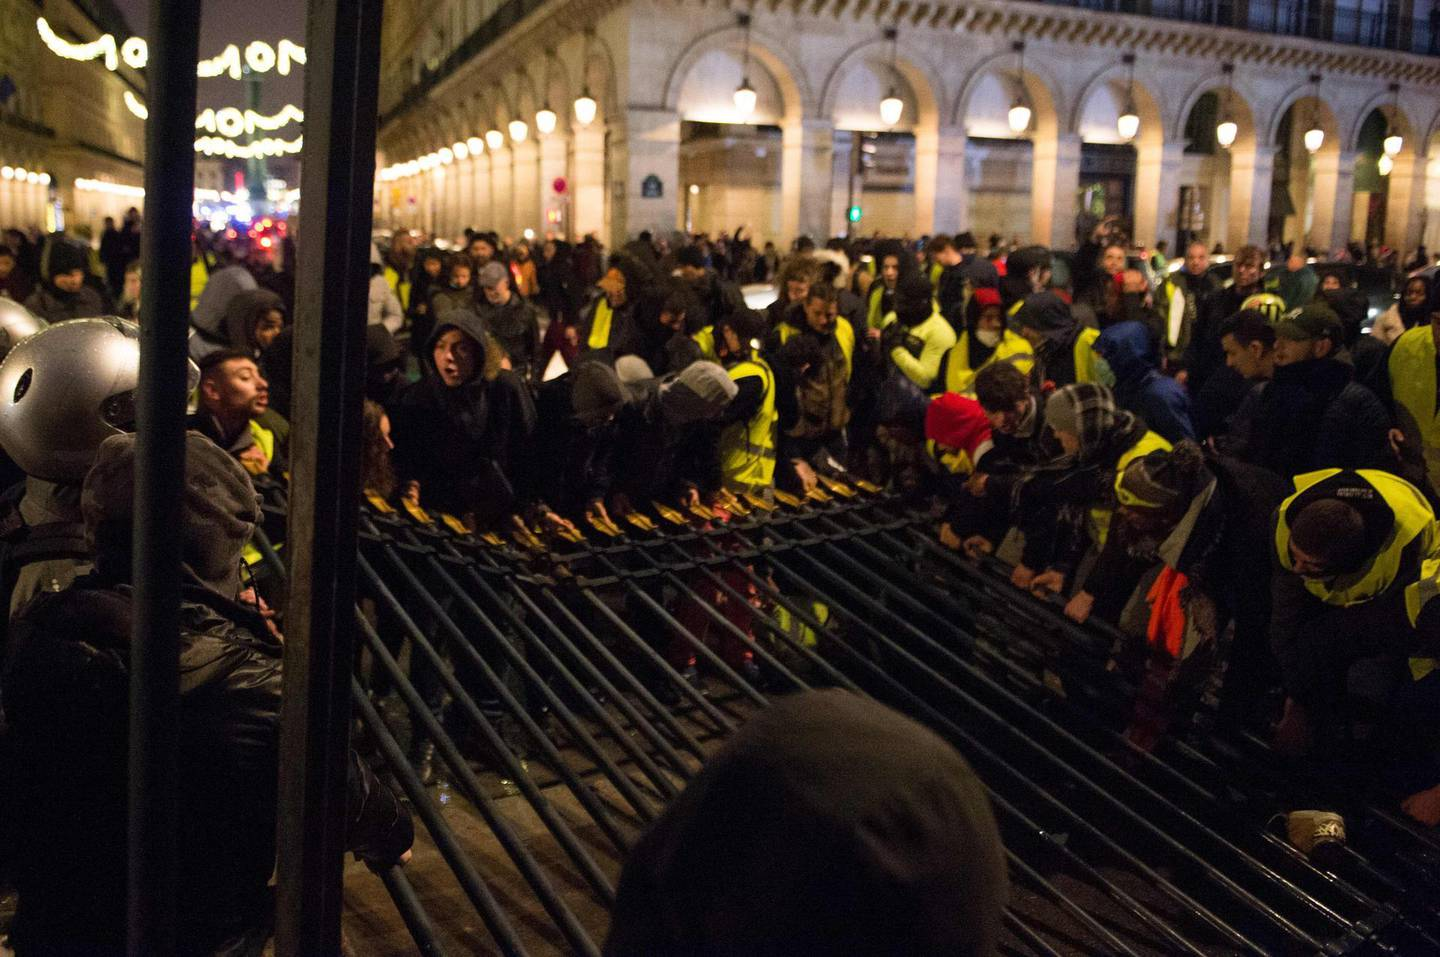 """TOPSHOT - Protestors wearing a yellow vest (Gilets jaunes) pull down the grating of the Tuileries Gardens next to the rue de Rivoli, in central Paris, during a demonstration against the rising oil prices and living costs, on December 1, 2018. Police and anti-government protesters clashed near the Champs-Elysees and in other parts of central Paris on December 1 with demonstrators hurling rocks and paint at riot police who responded with tear gas. The clashes came as thousands took part in a third weekend of """"yellow vest"""" protests which have morphed from anger over fuel taxes into a broader anti-government movement. / AFP / -"""